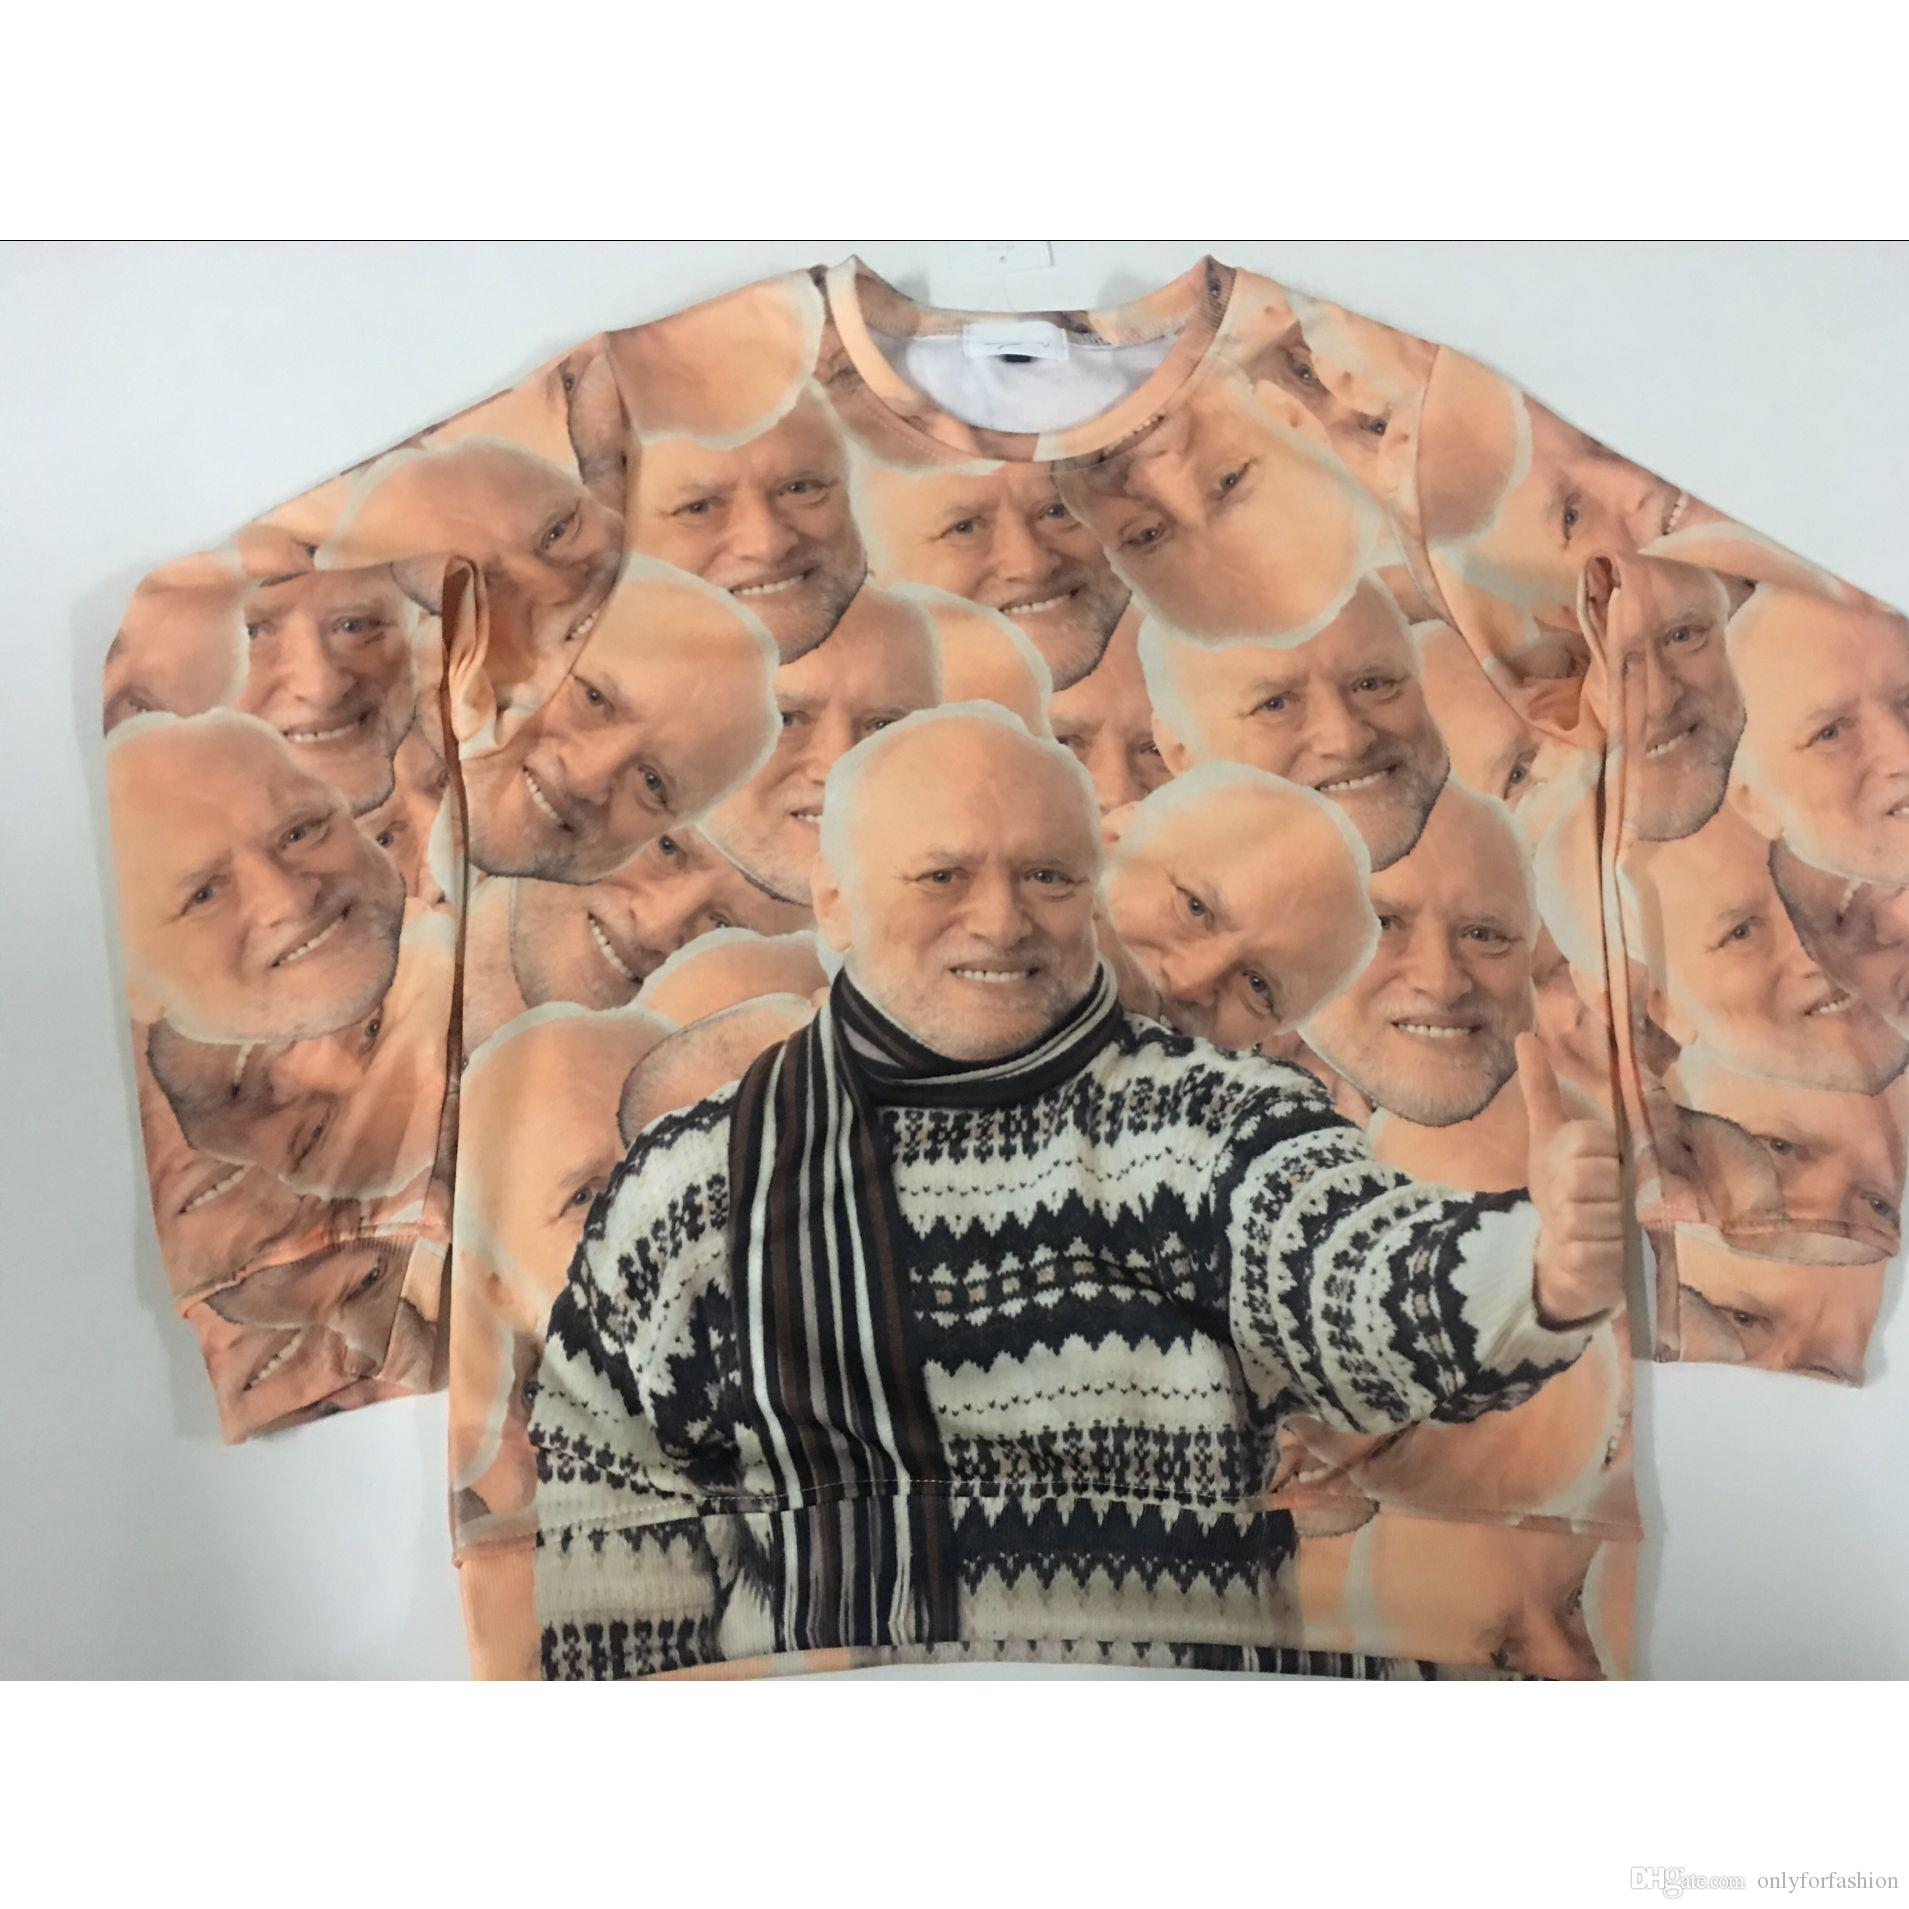 2994c09d6 2019 Real USA Size Hide The Pain Harold Collage 3D Sublimation Printing  Sweatshirt Crewneck Plus Size 3XL 4XL 5XL 6XL From Onlyforfashion, $24.22 |  DHgate.